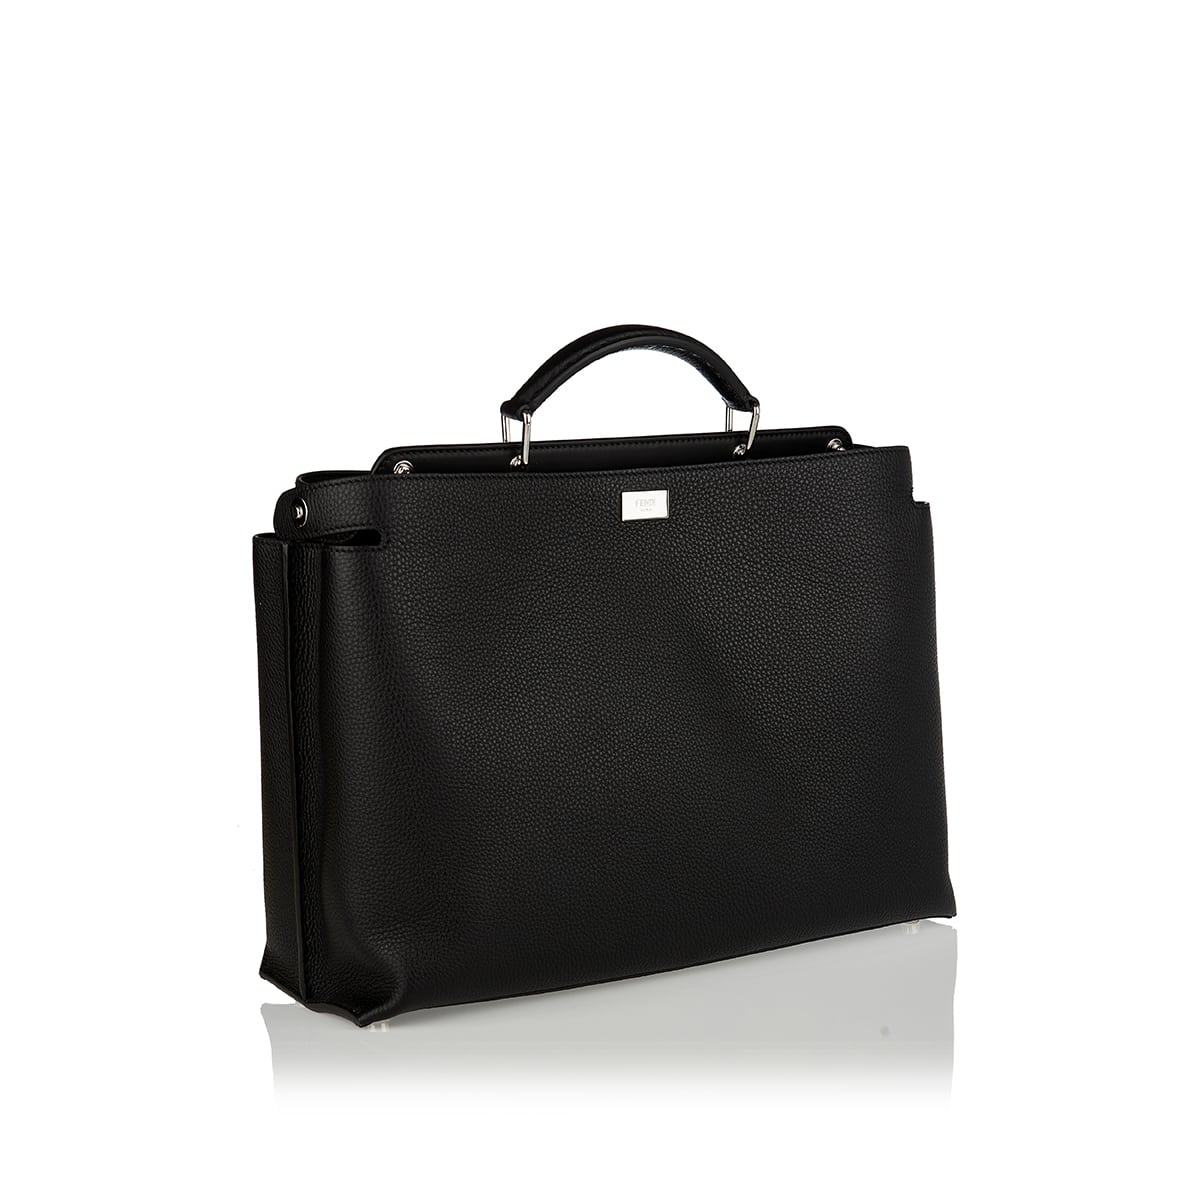 Peekaboo Iconic leather brief case